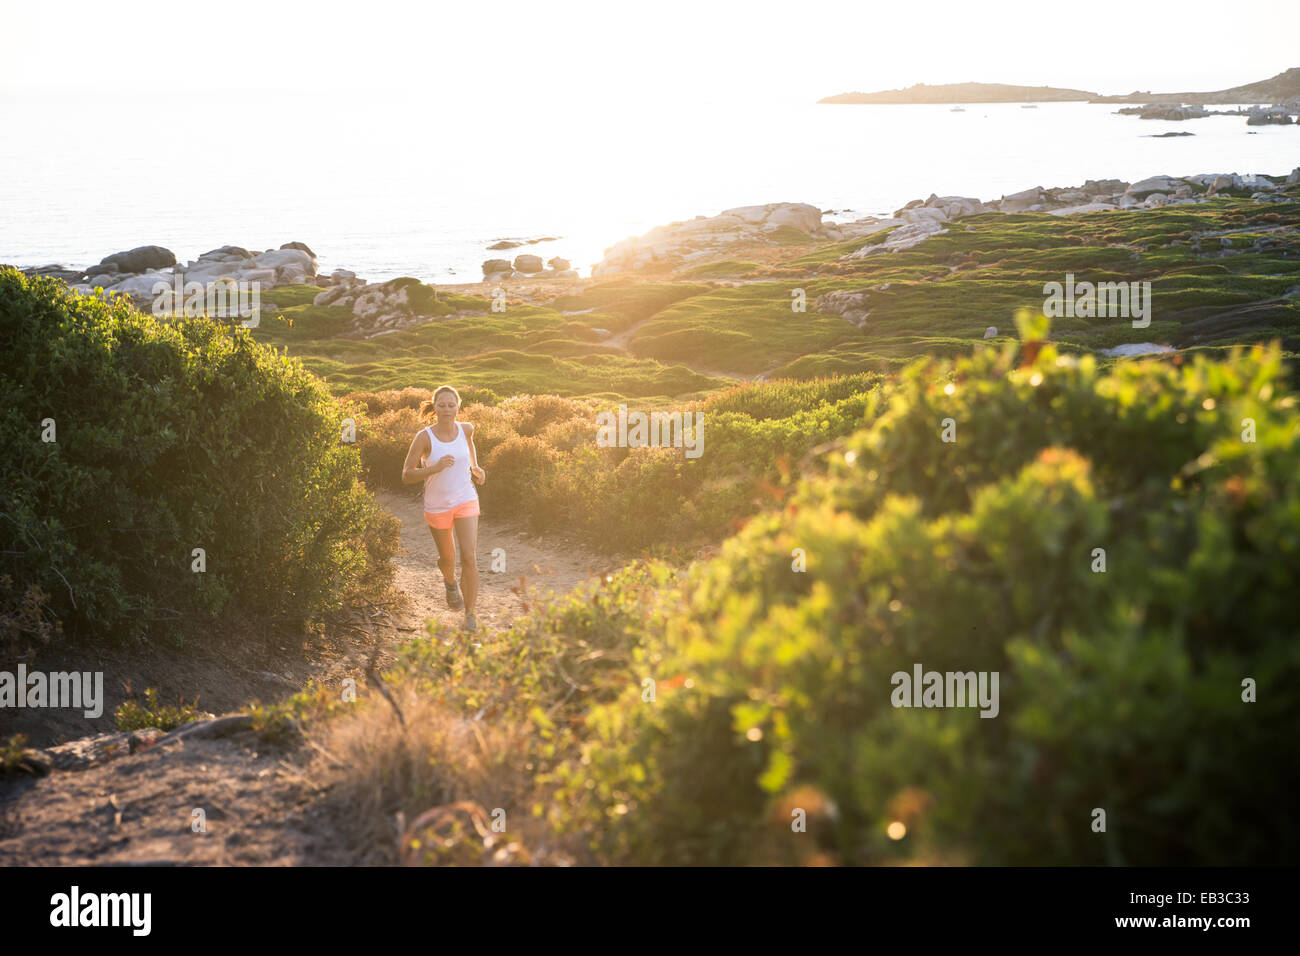 France, Corsica, Woman trail running at coast - Stock Image